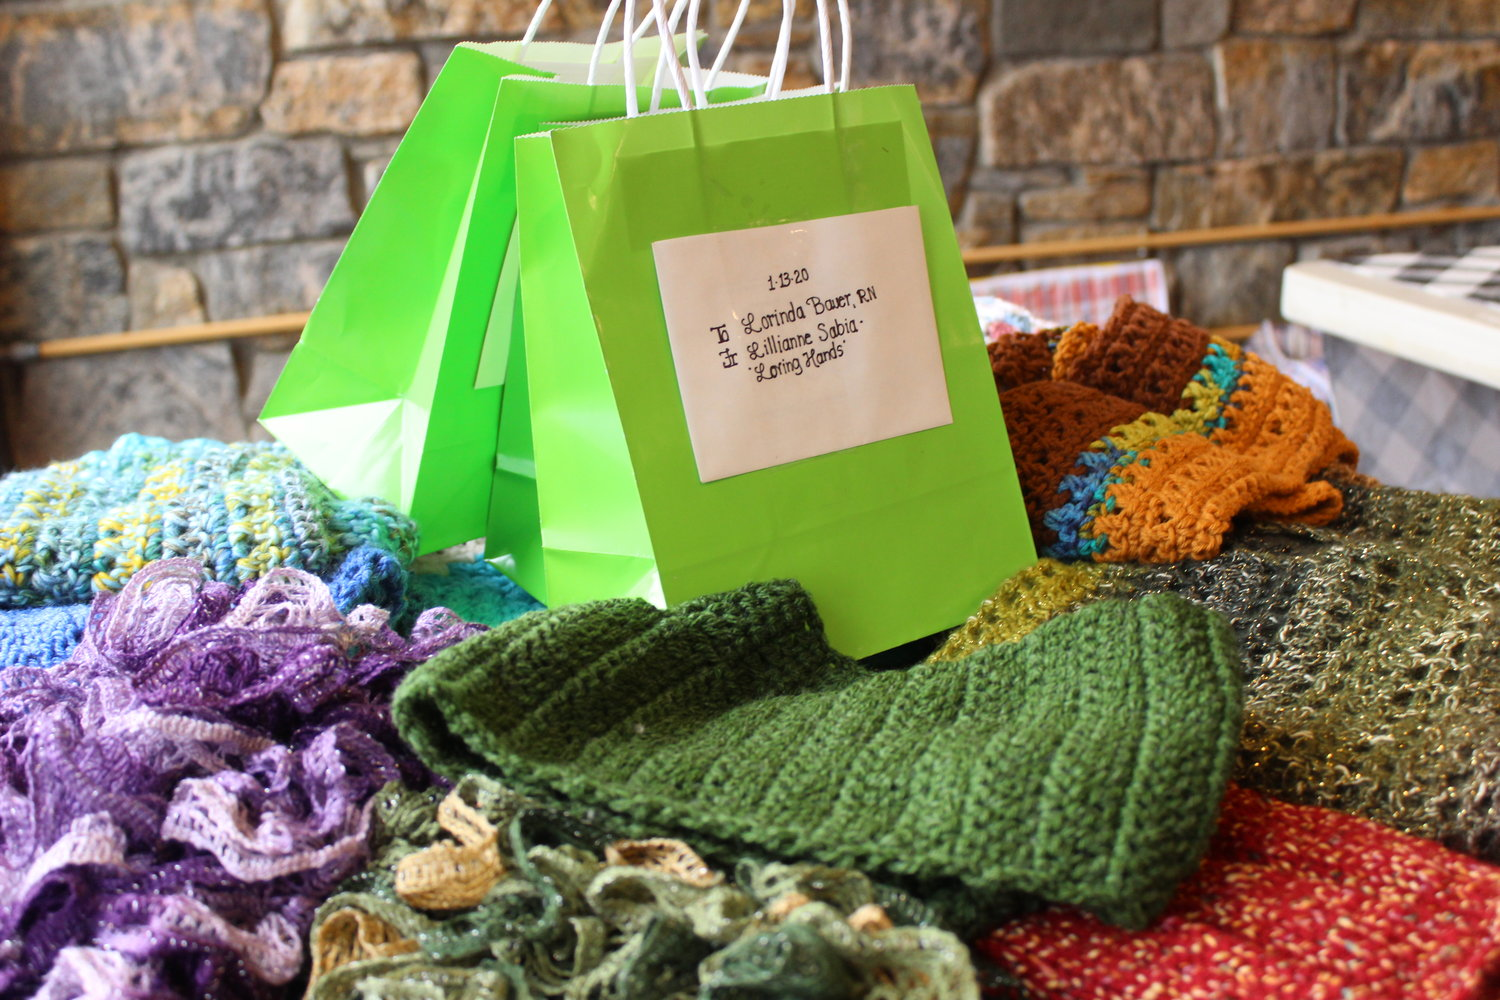 The member of Loving Hands crochet and knit shawls, blankets and other goods that they donate to charities across Long Island.